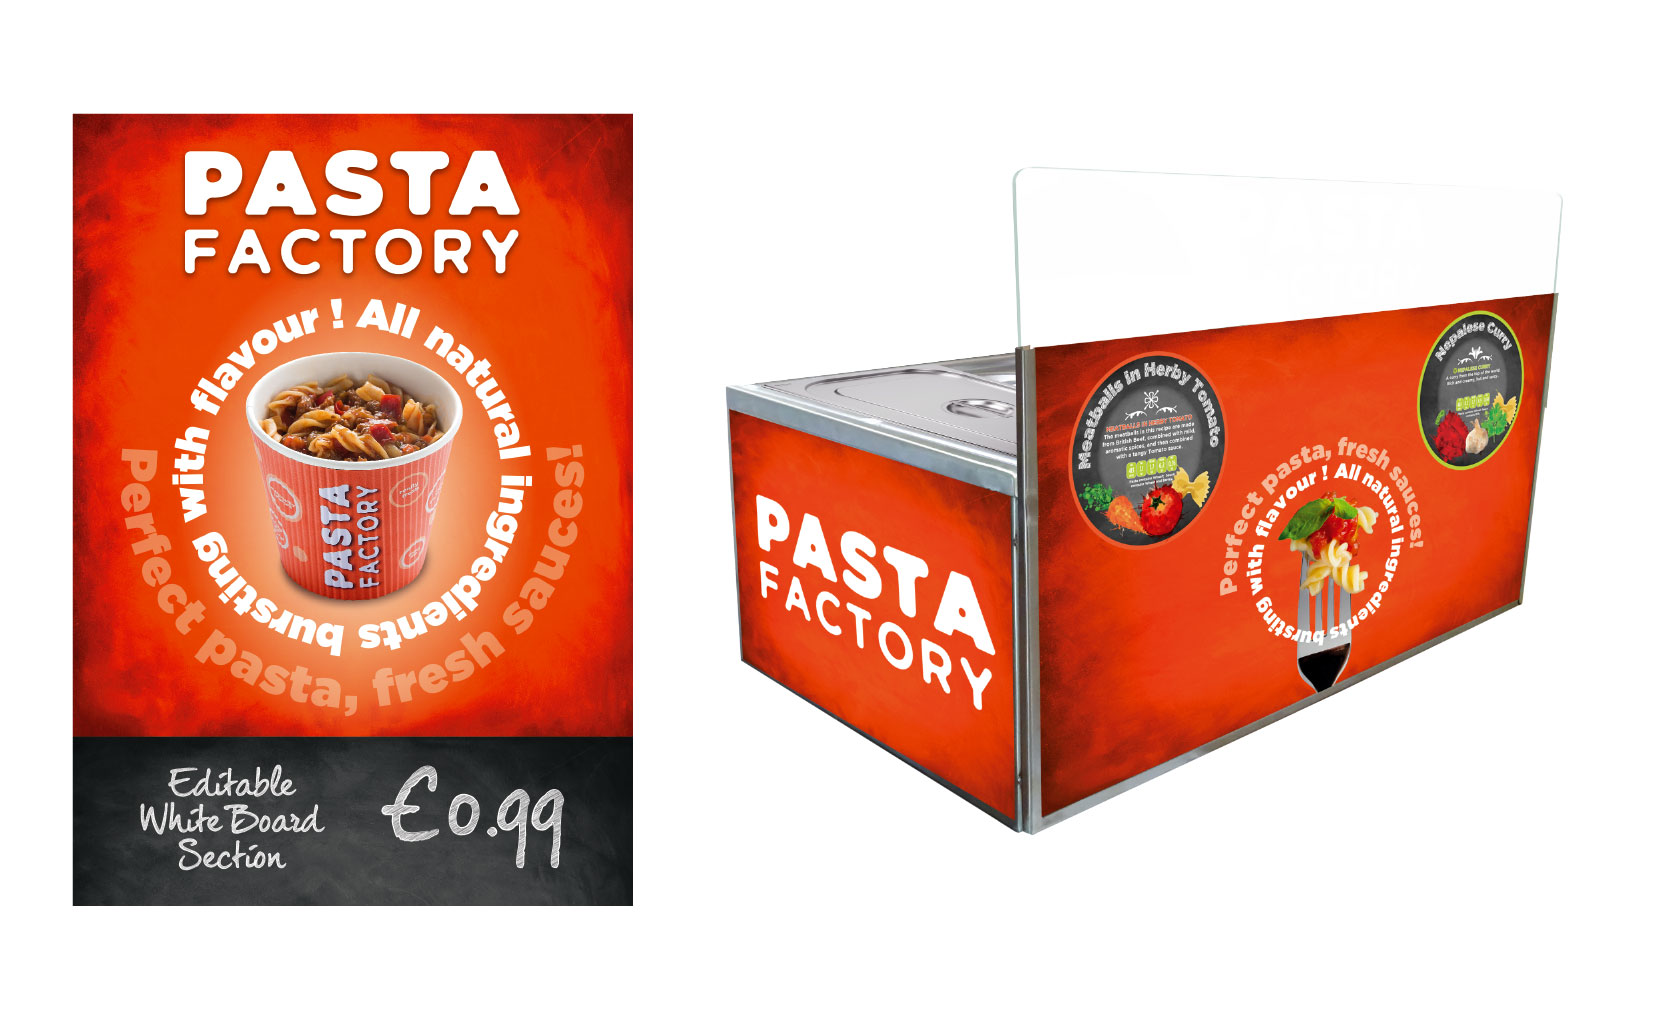 internal pos signage for pasta factory brand